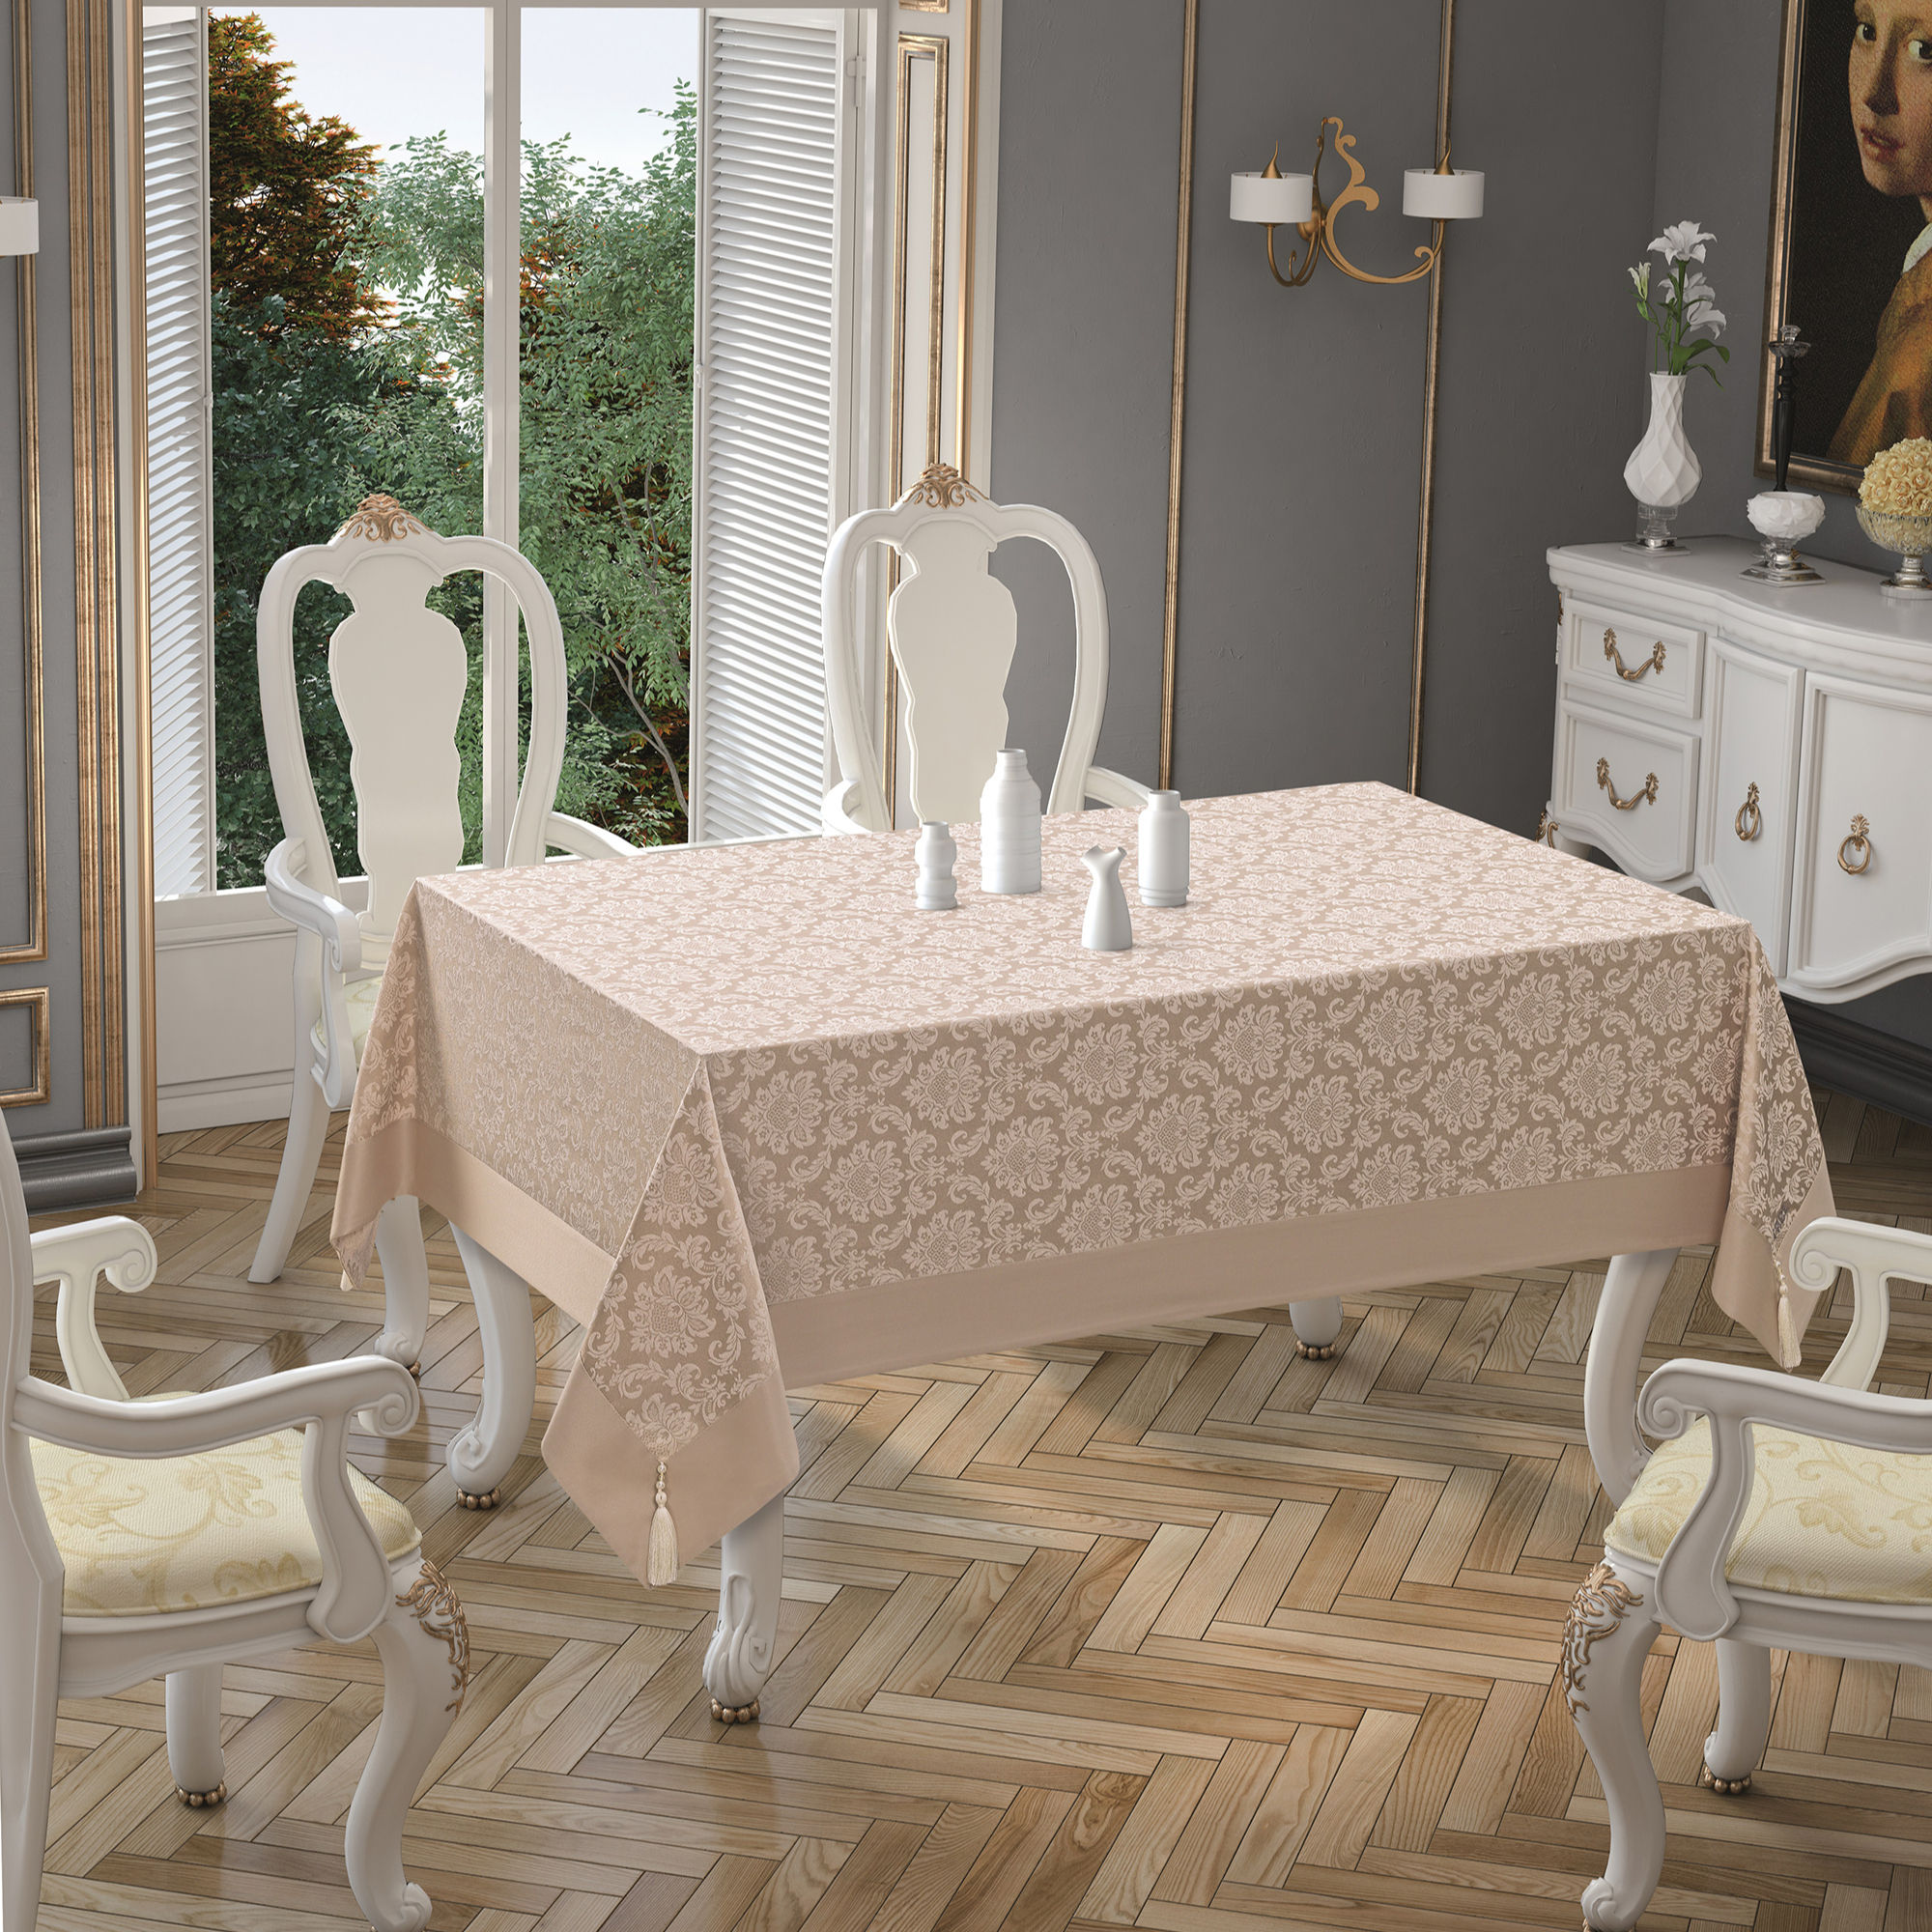 Polycotton Table Cloths Luxury Home Textile Fabric Made in Turkey